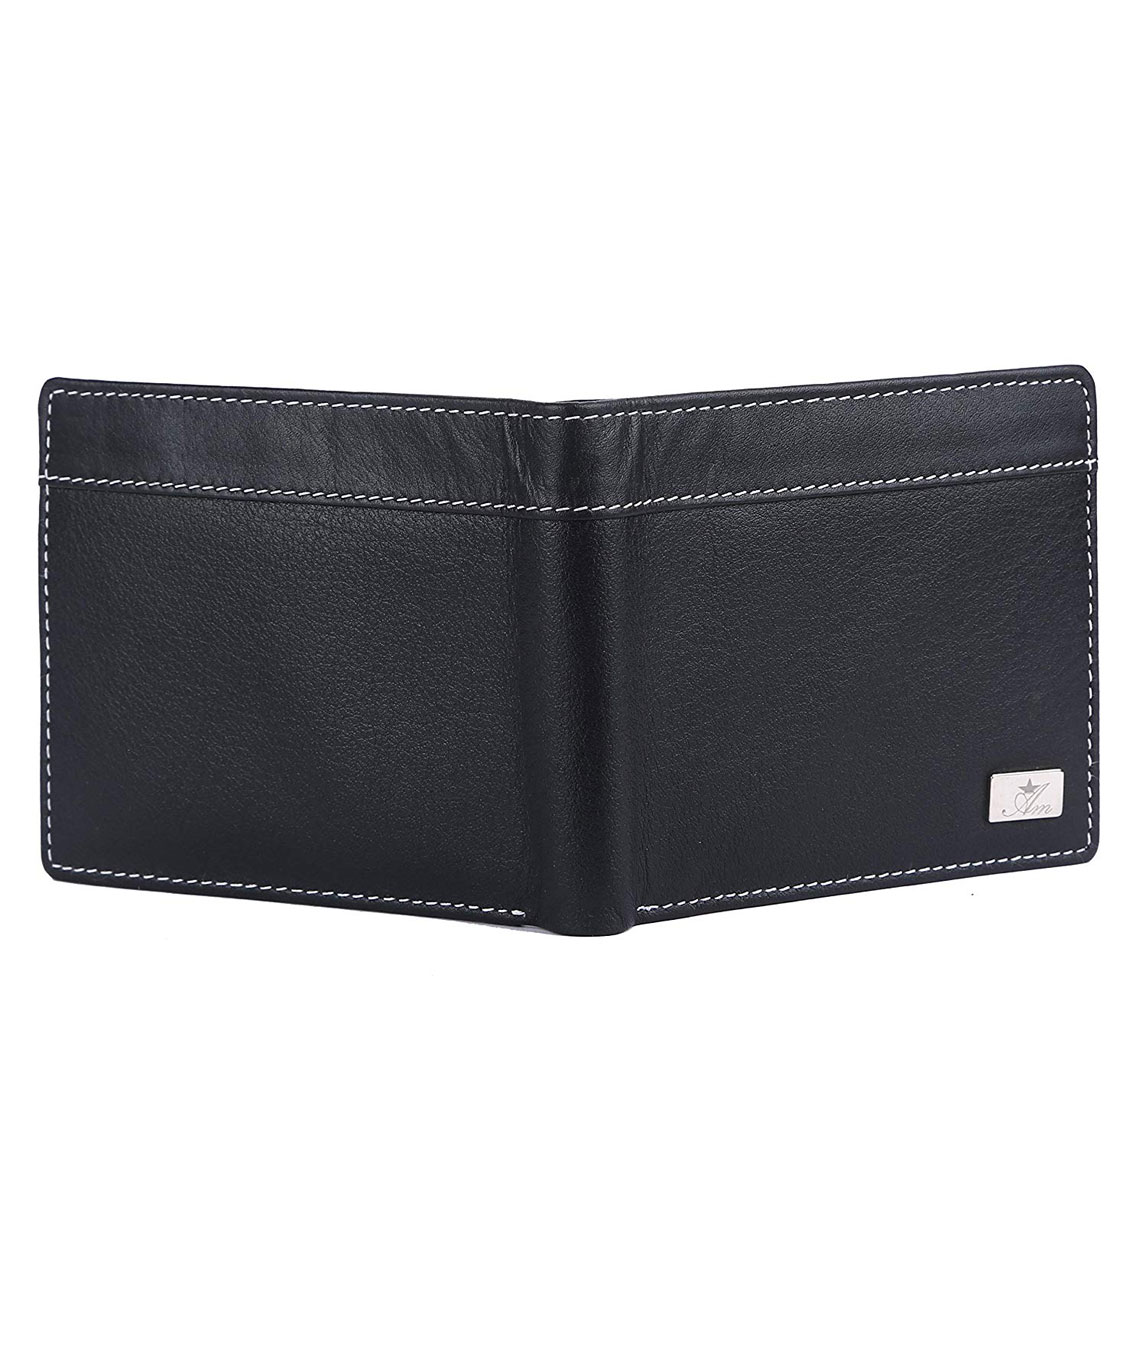 AM LEATHER Bi Fold Genuine Leather Wallet Black Premium Quality/Hand Crafted Purse/Wallet for Men & Boys